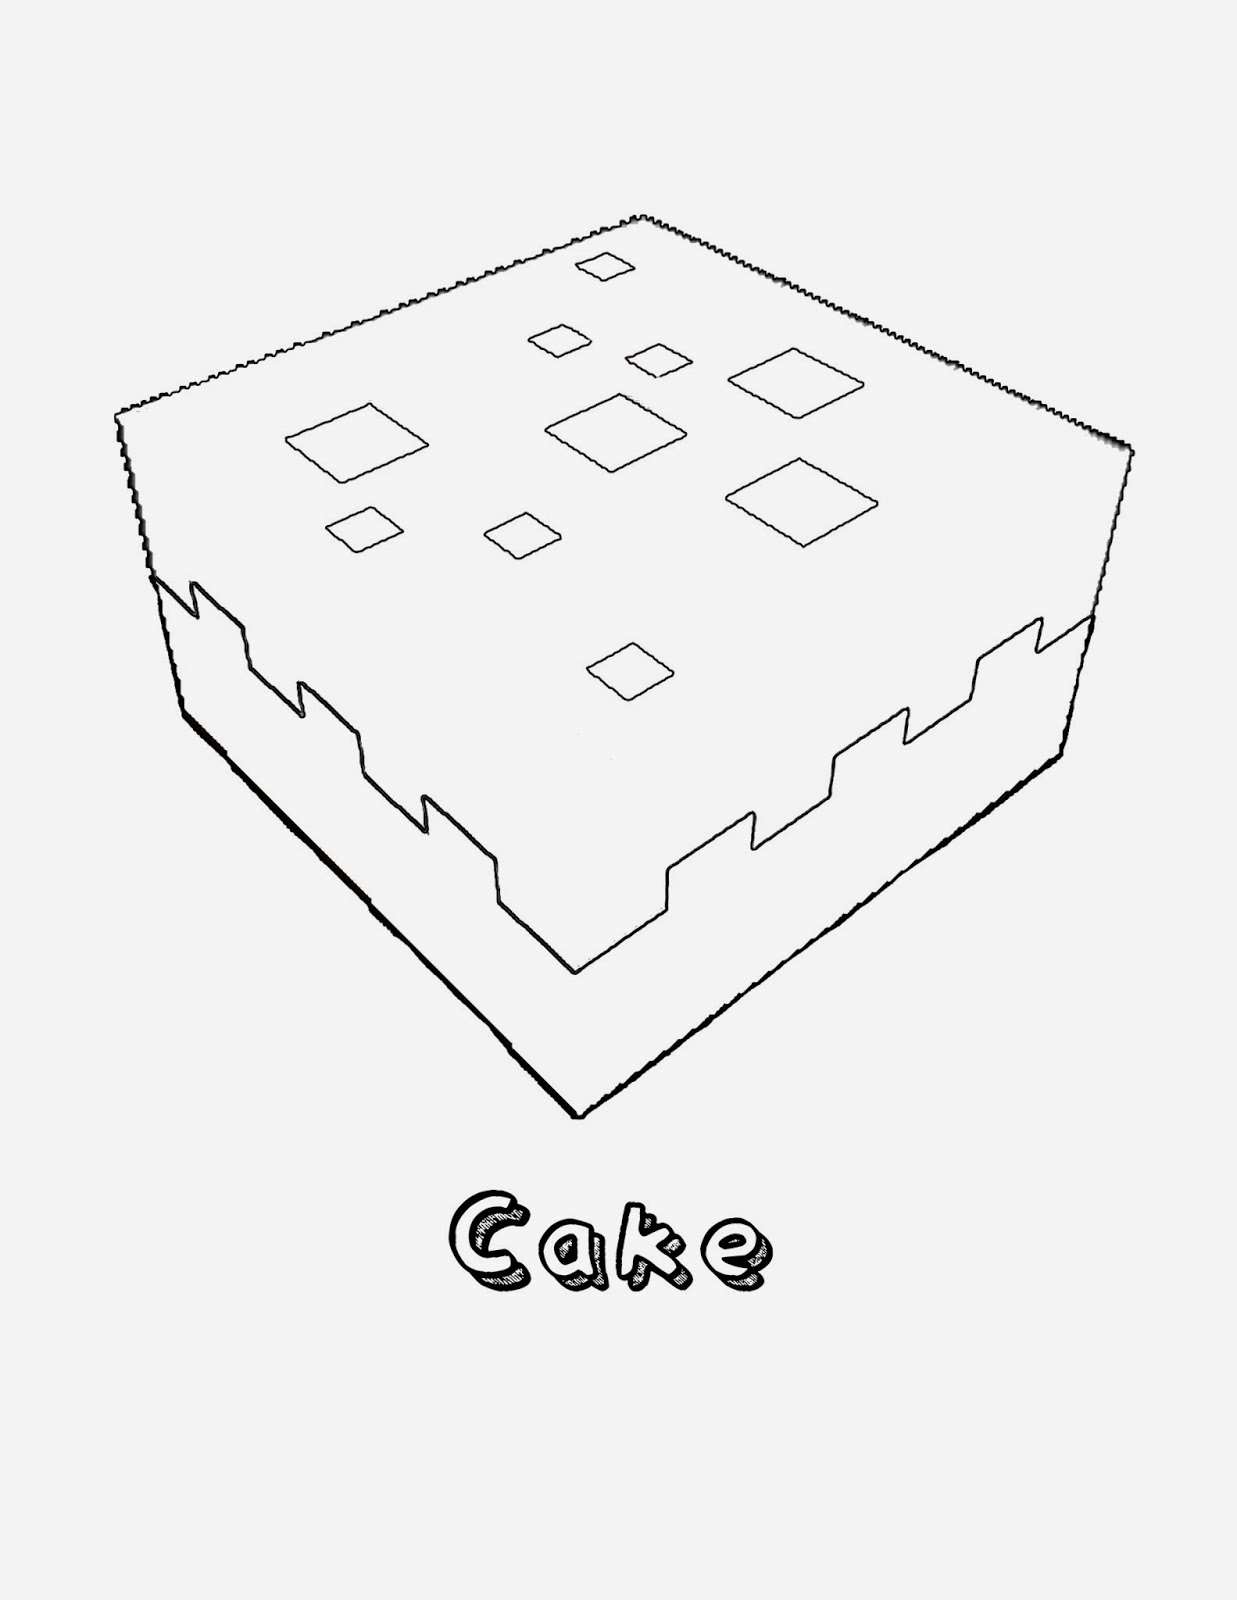 minecraft coloring pages cake - photo#3